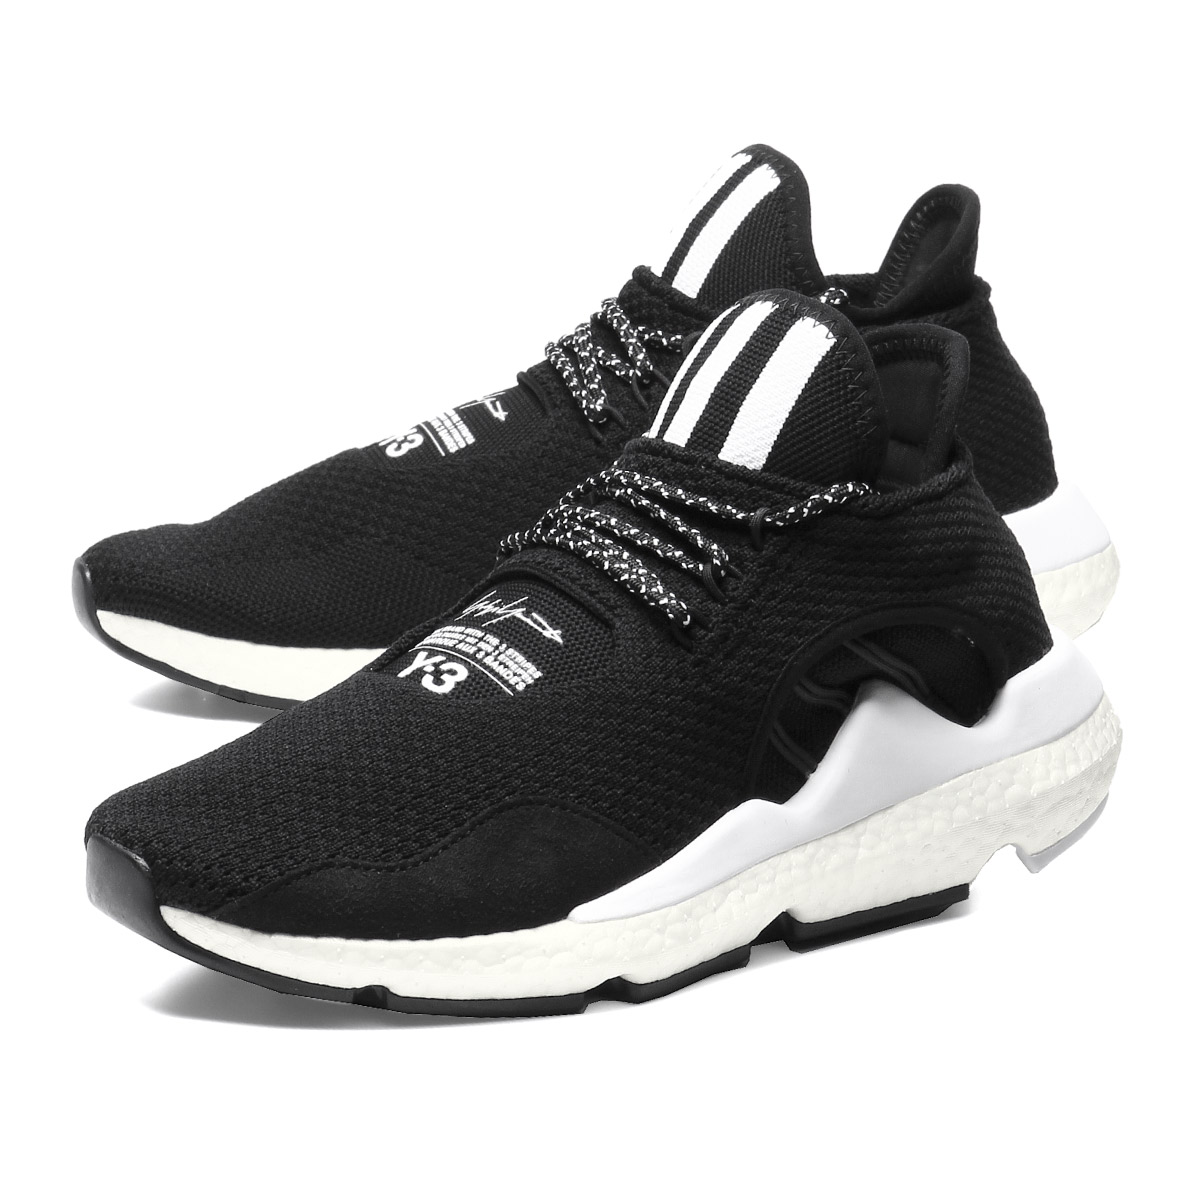 Weiss Lee Y-3 shoes men AC7196 sneakers SAIKOU rhinoceros Ko  CBLACK FTWWHT CWHITE black 86f95d50f